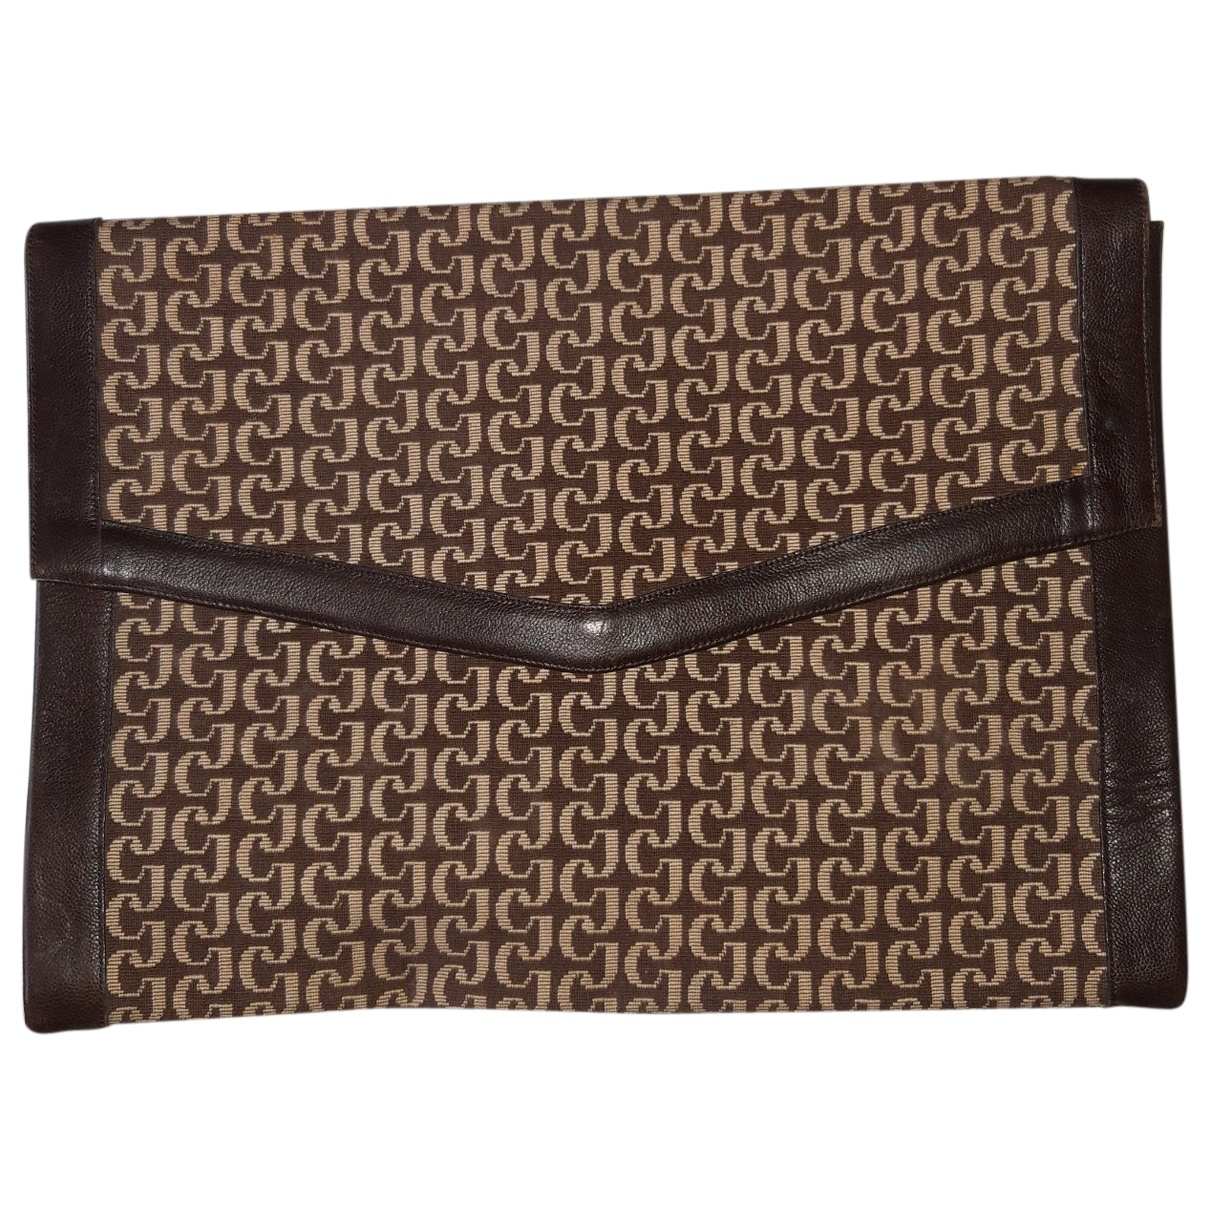 Charles Jourdan \N Clutch in  Braun Leinen